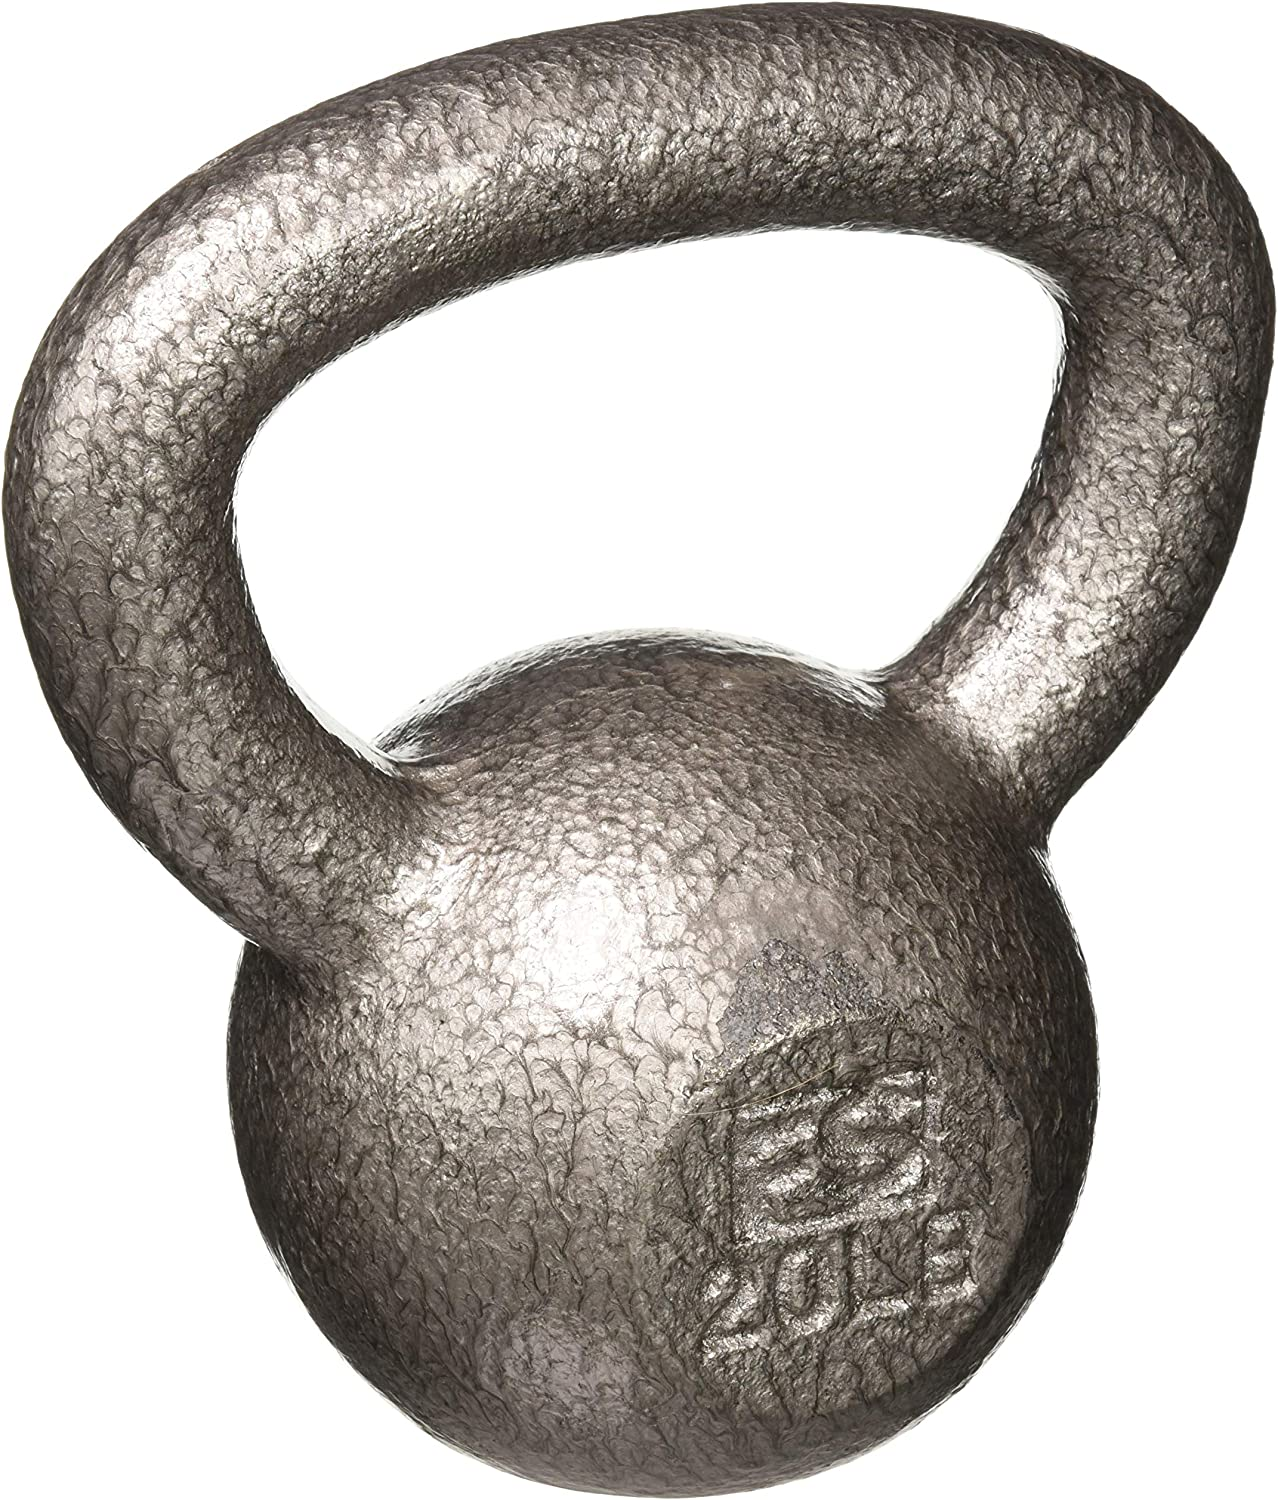 Sunny Health Fitness Vinyl Coated Kettlebell Weights Available in 5Lbs, 10Lbs, 15Lbs, 20Lbs, or 25Lbs